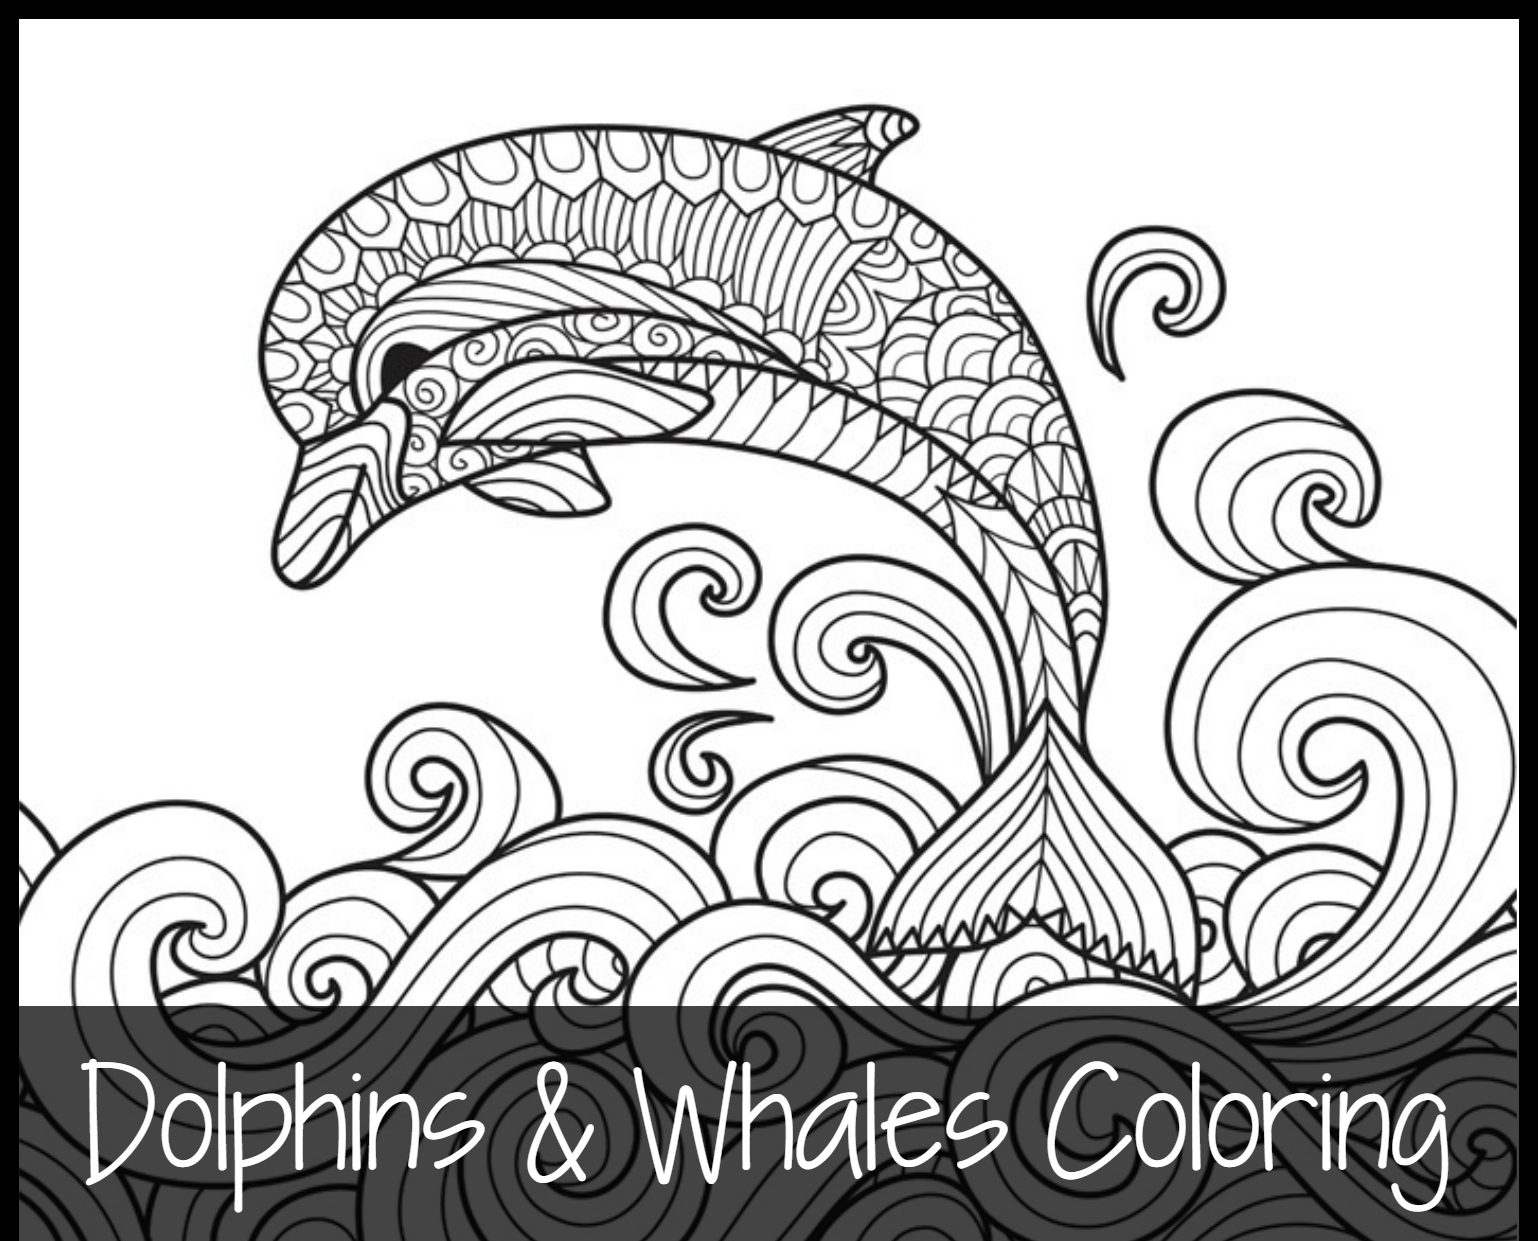 free coloring printables - Whale Coloring Pages